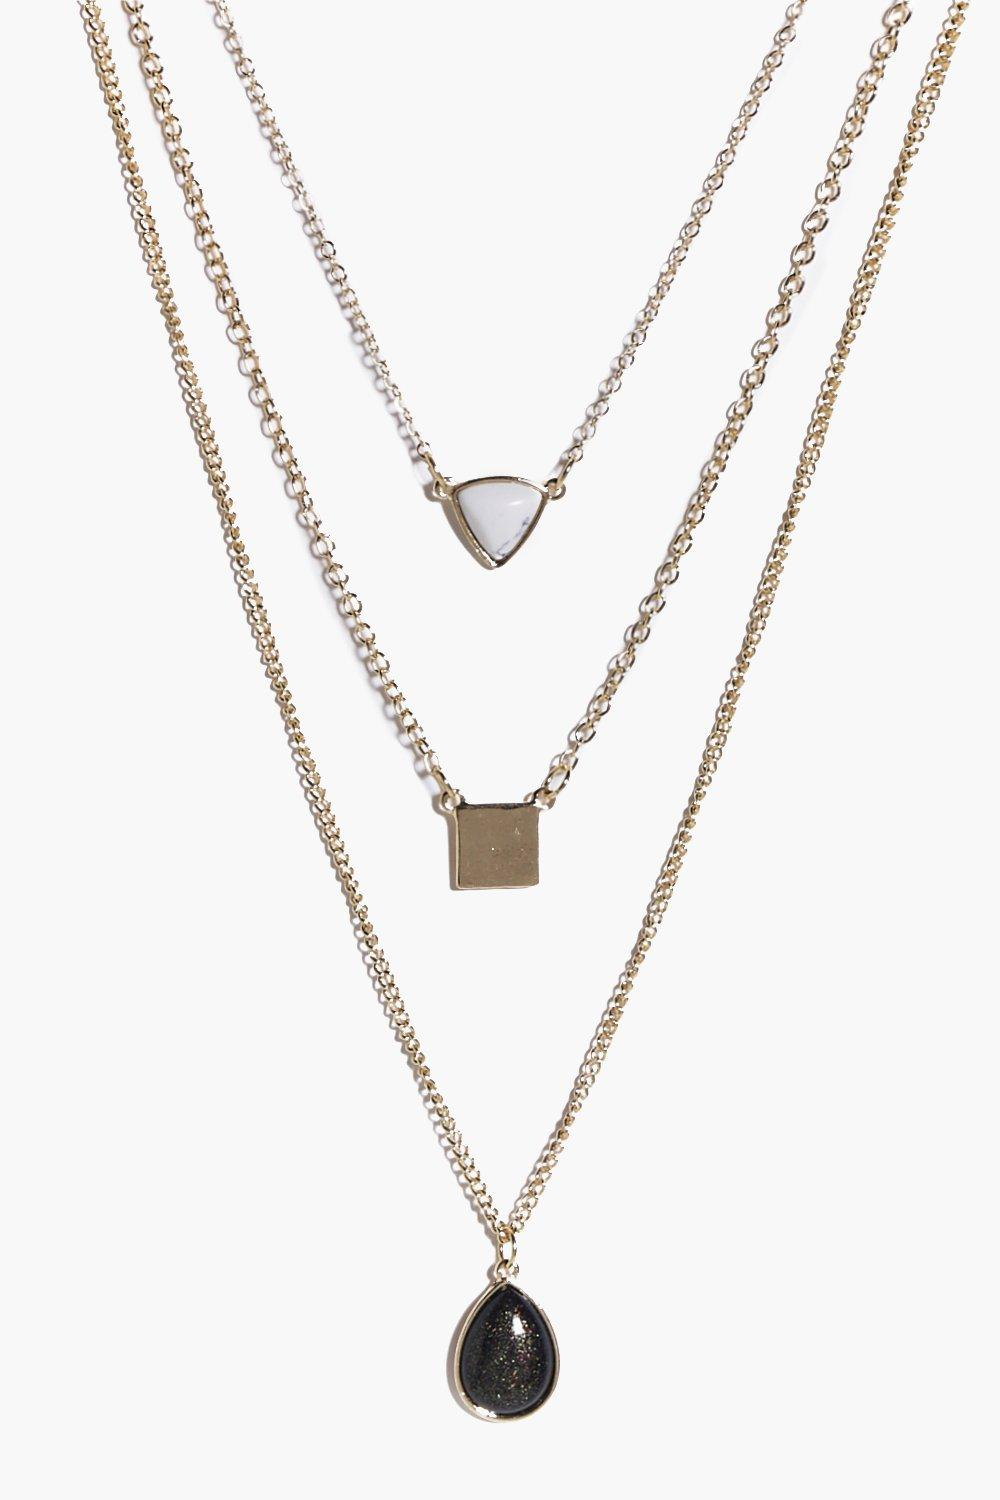 Keira Stone Pendant Layered Necklace